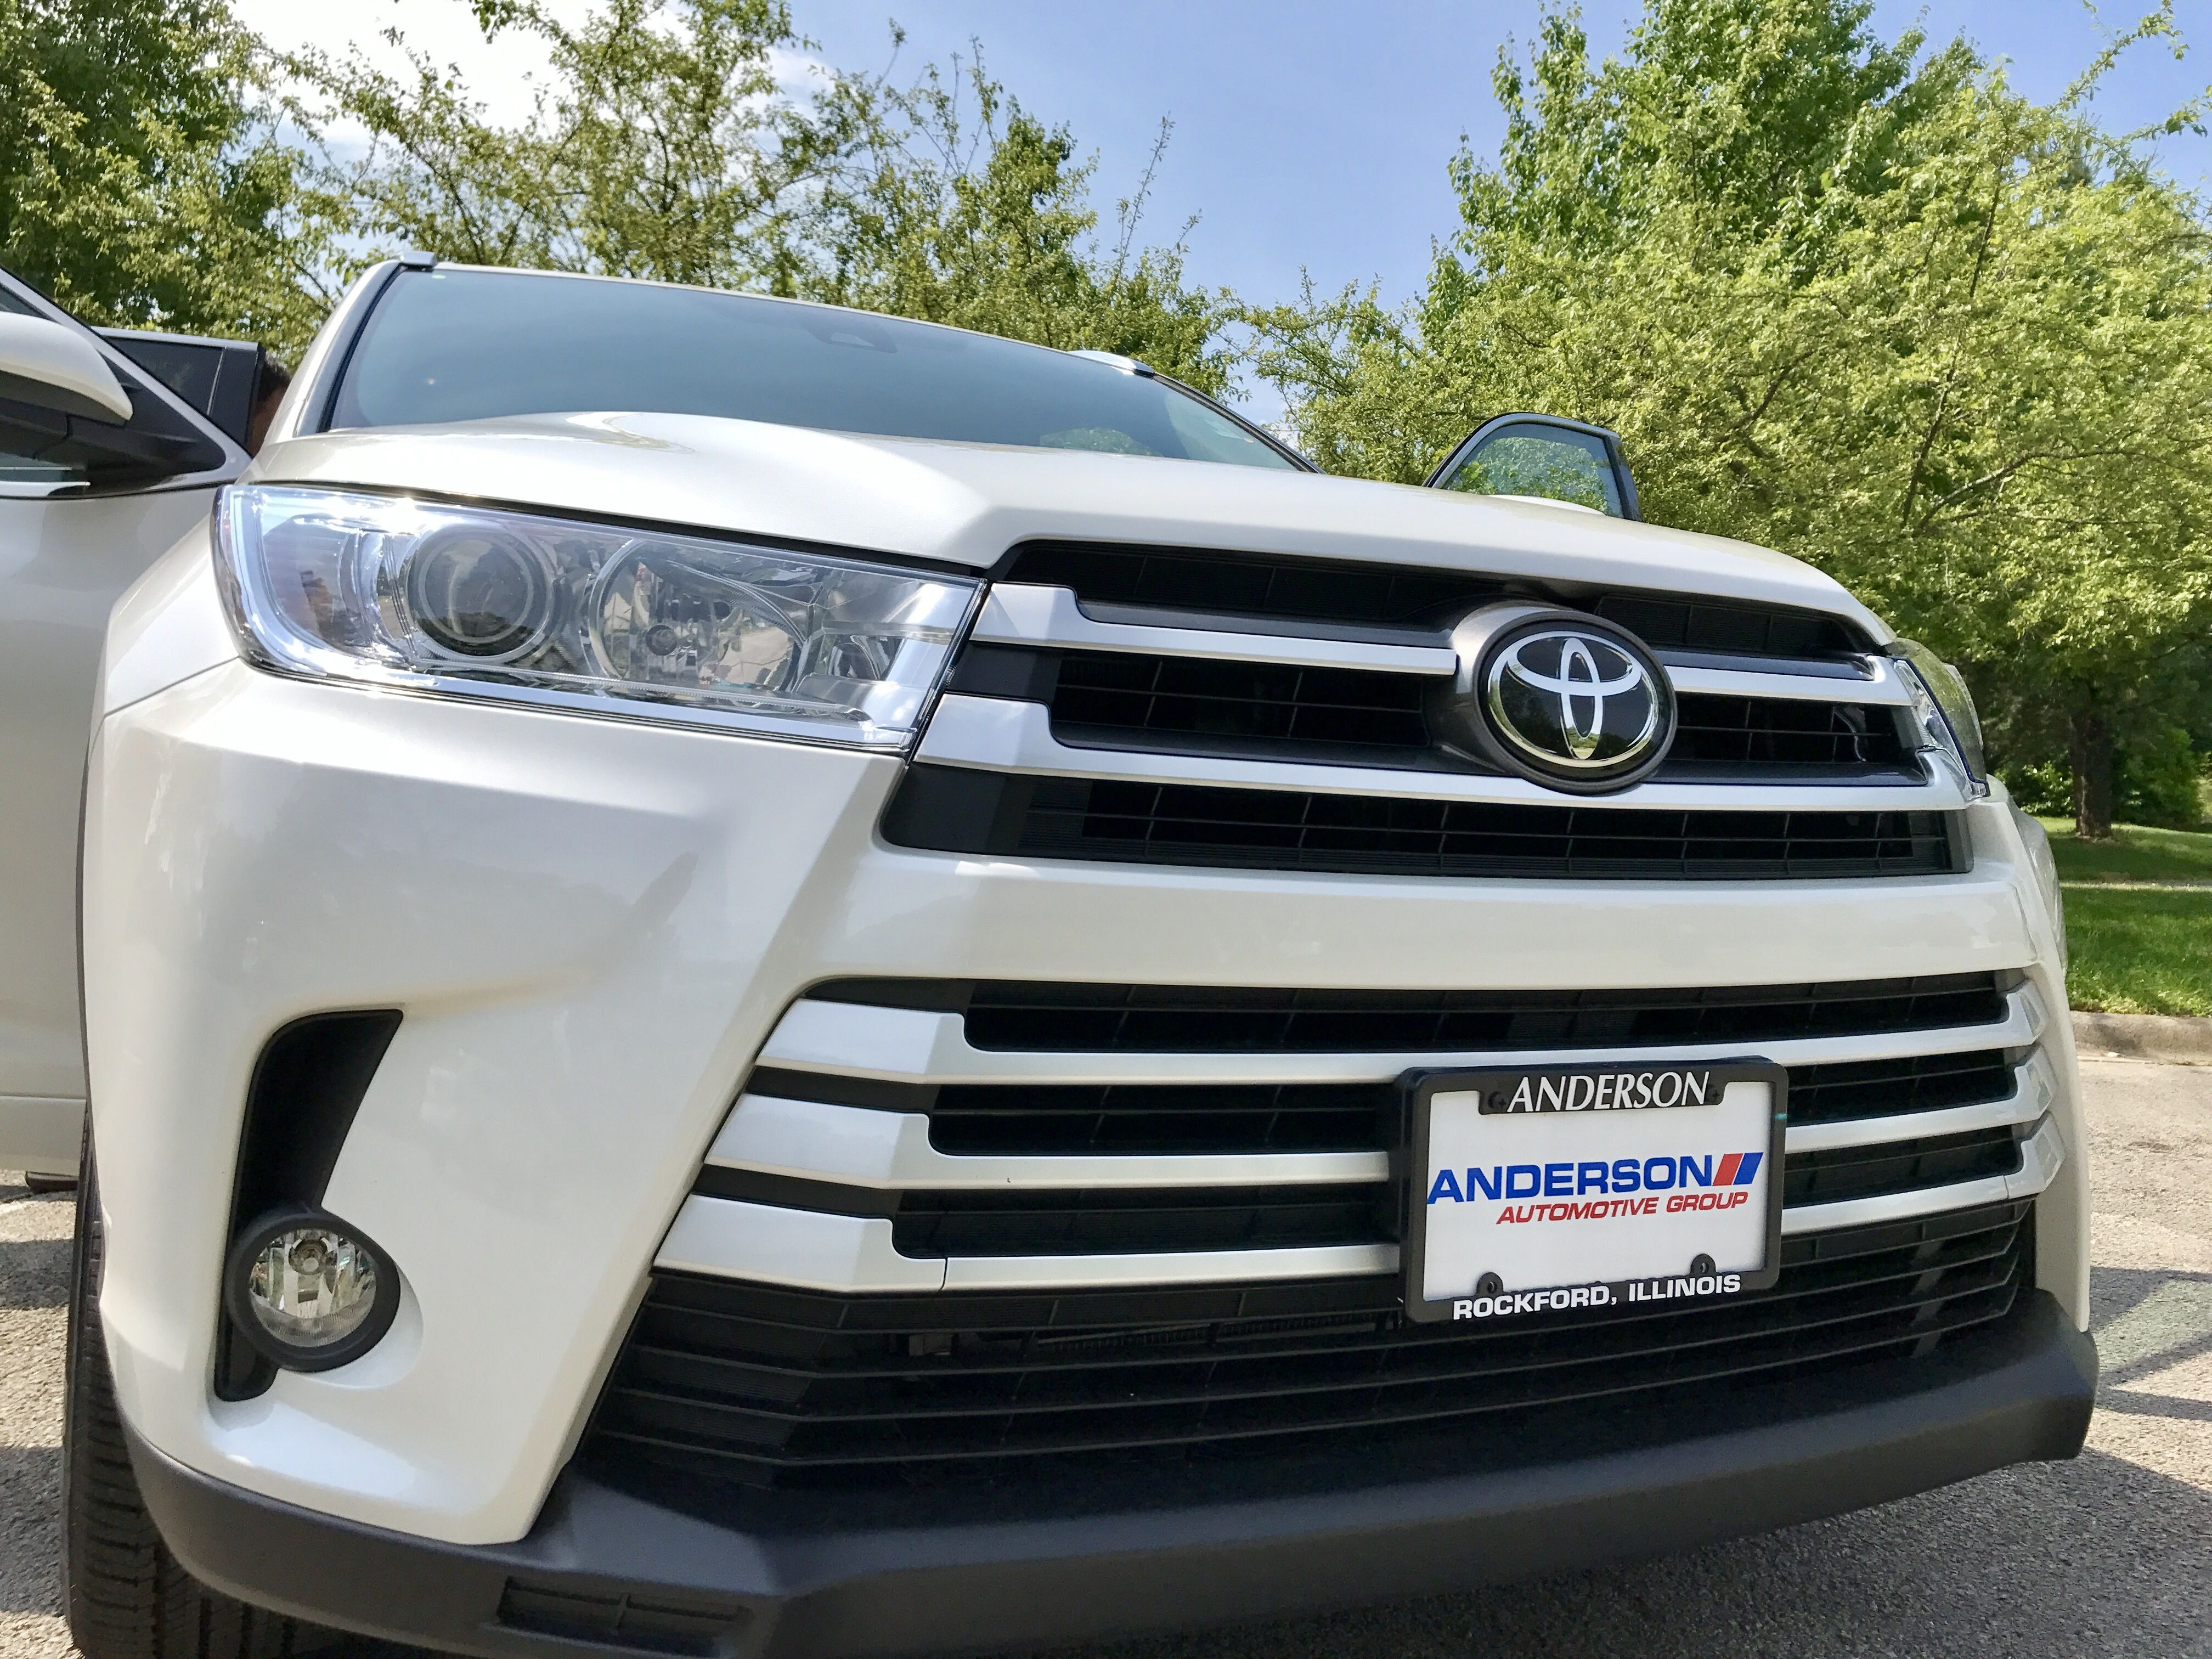 Toyota Highlander Grille 2017 Anderson Toyota Rockford Illinois